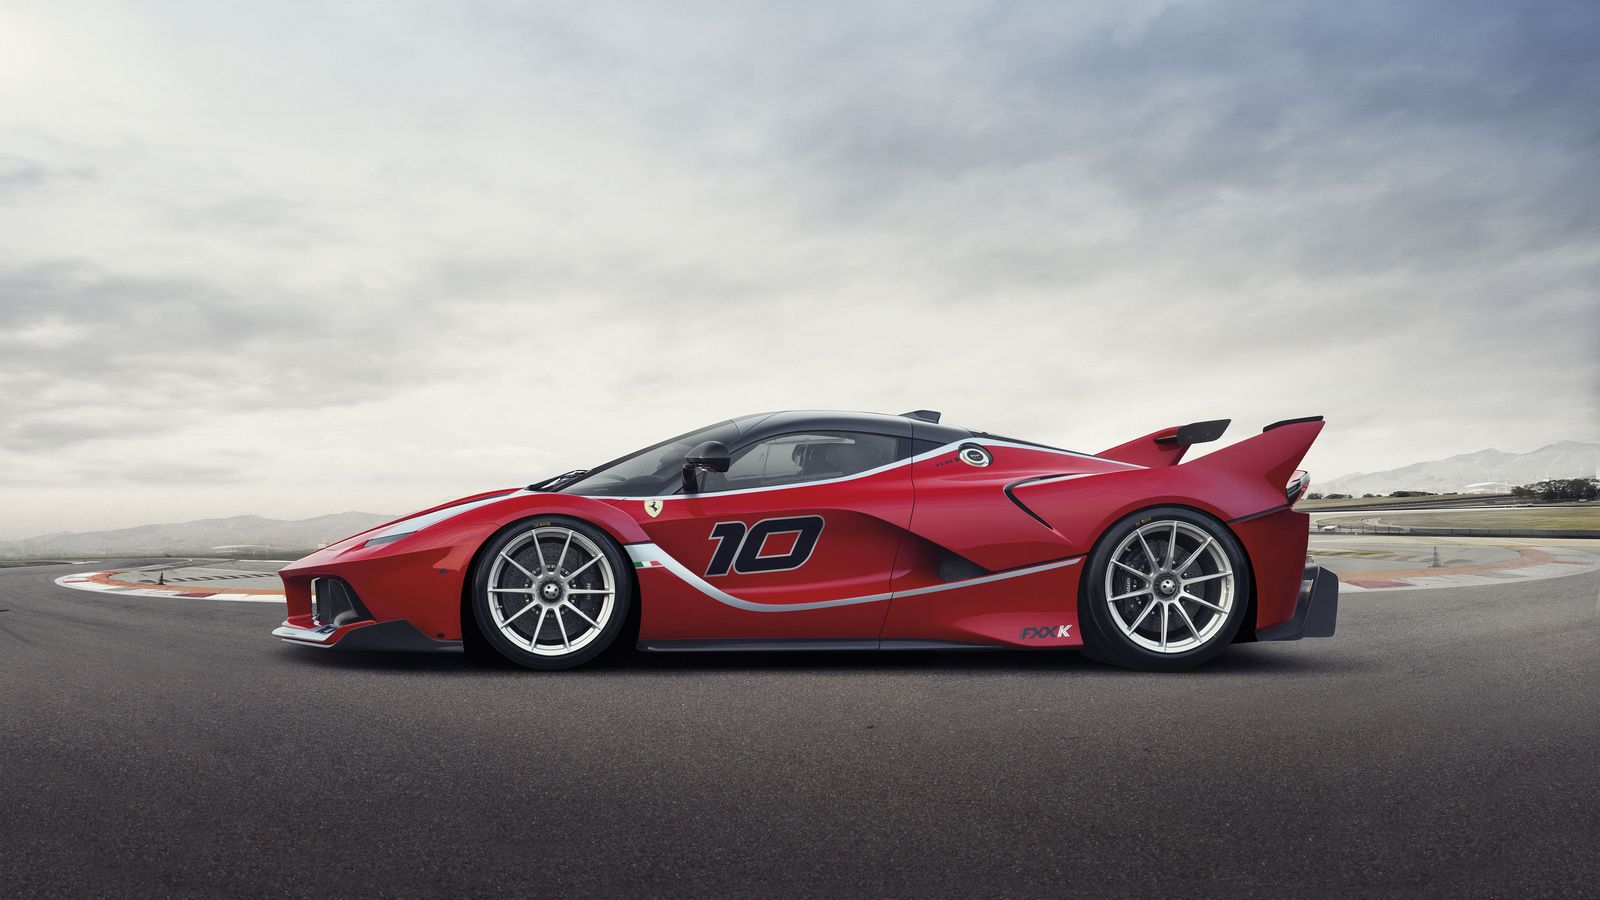 Surprised? All 32 Ferrari FXX Ks Sold Out Despite $2.7 Million Price Tag | Carscoops